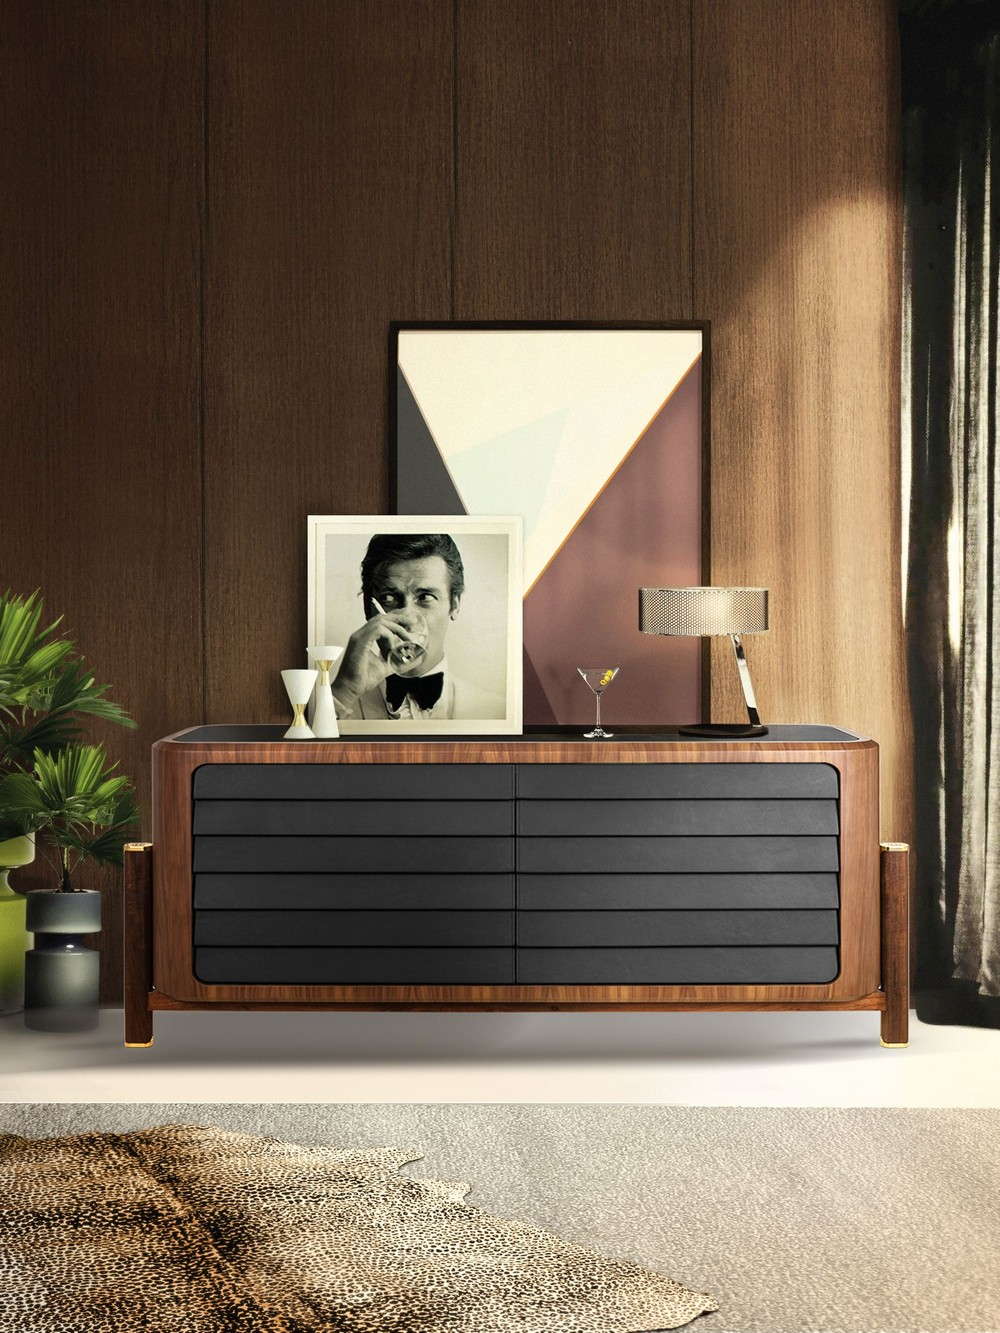 Surprising Sideboard Design Trends For A Contemporary Home Decor